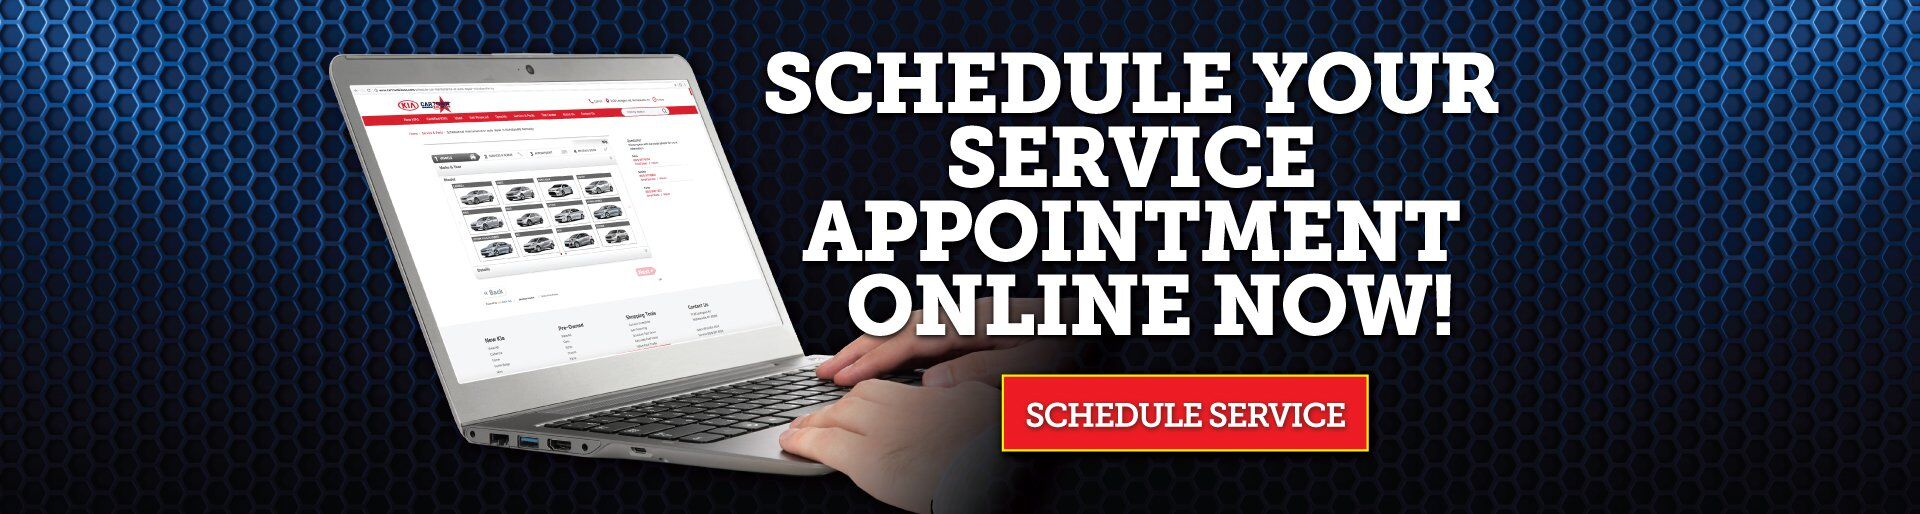 Schedule Service Online at Cartown Kia